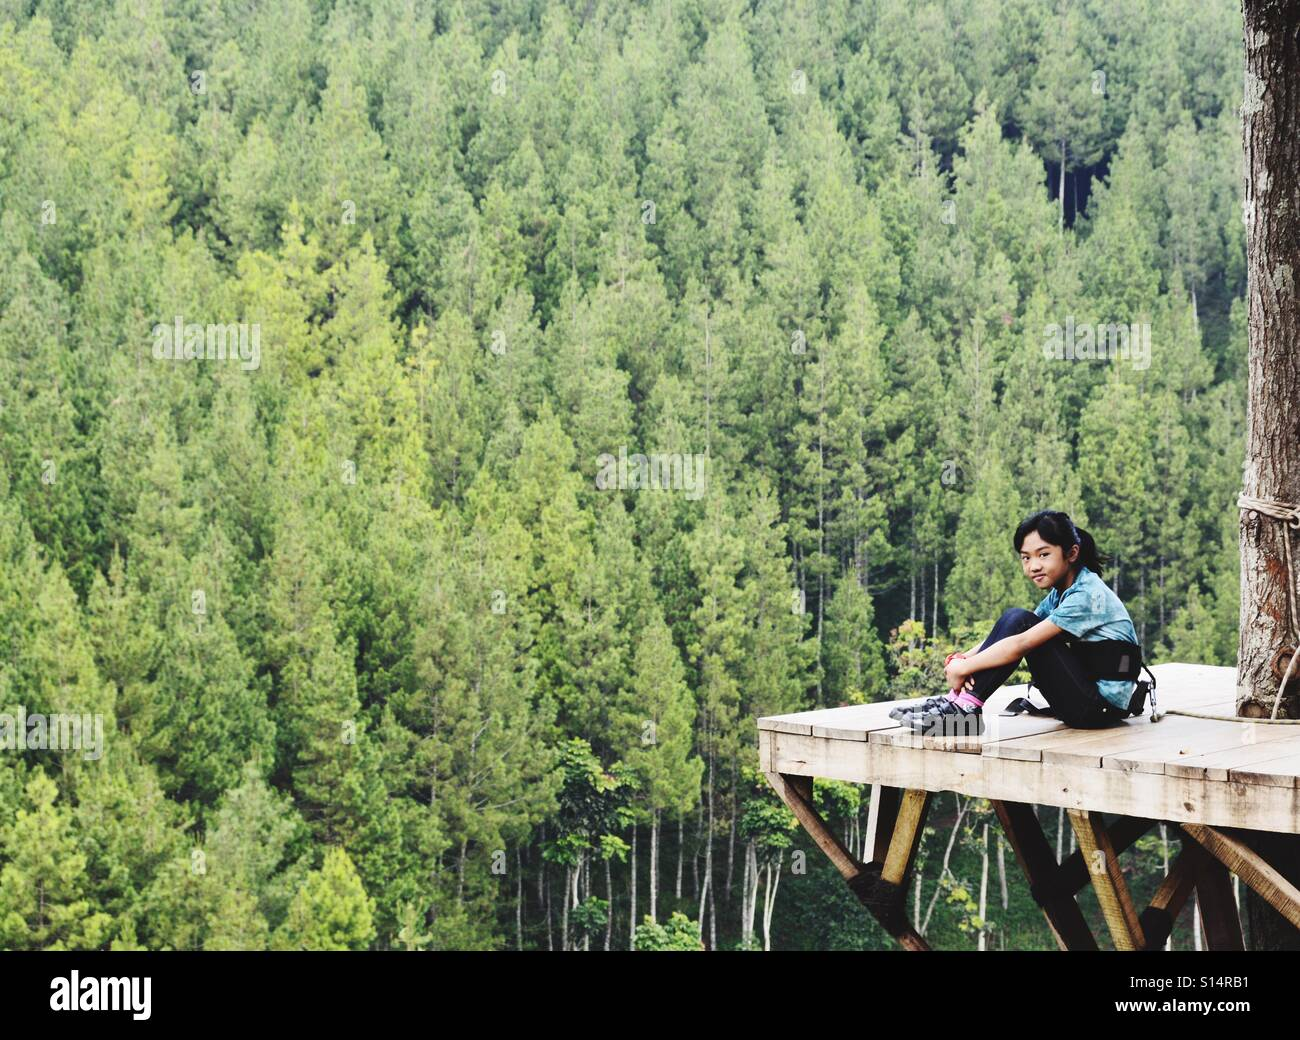 A young adventurer with a head for heights. She sits on a wooden platform high above the wooded valley below. - Stock Image